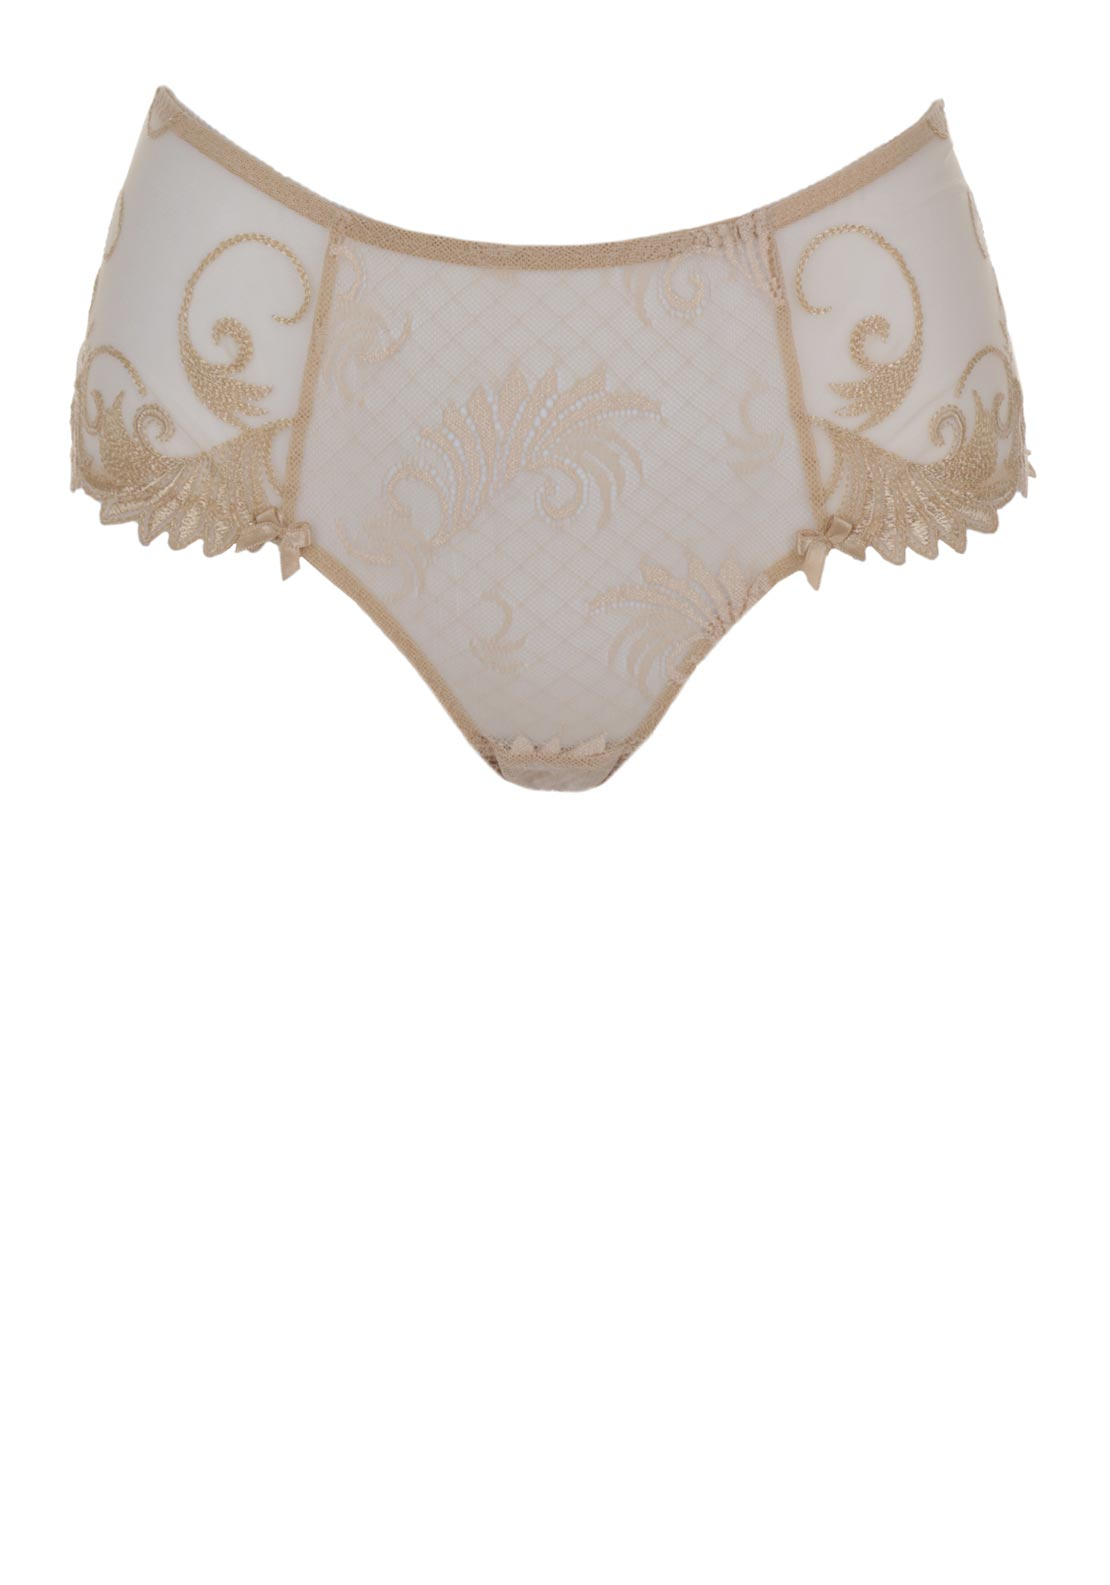 Empreinte Thalia Embroidered Lace Shorty Brief, Caramel